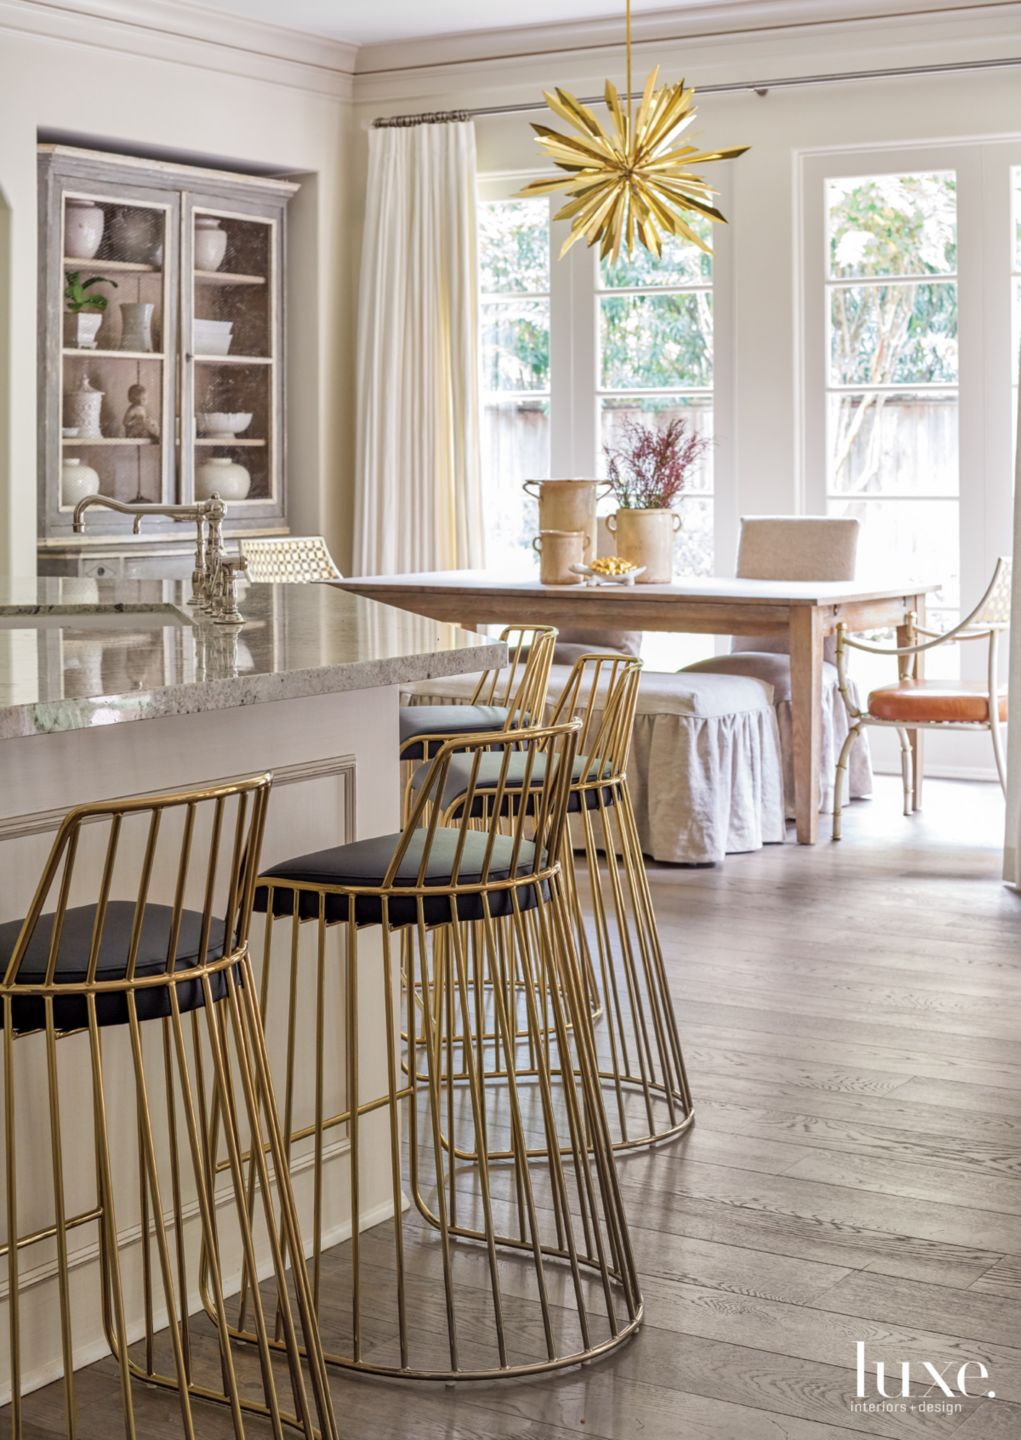 Transitional White Kitchen with Wire-Like Barstools